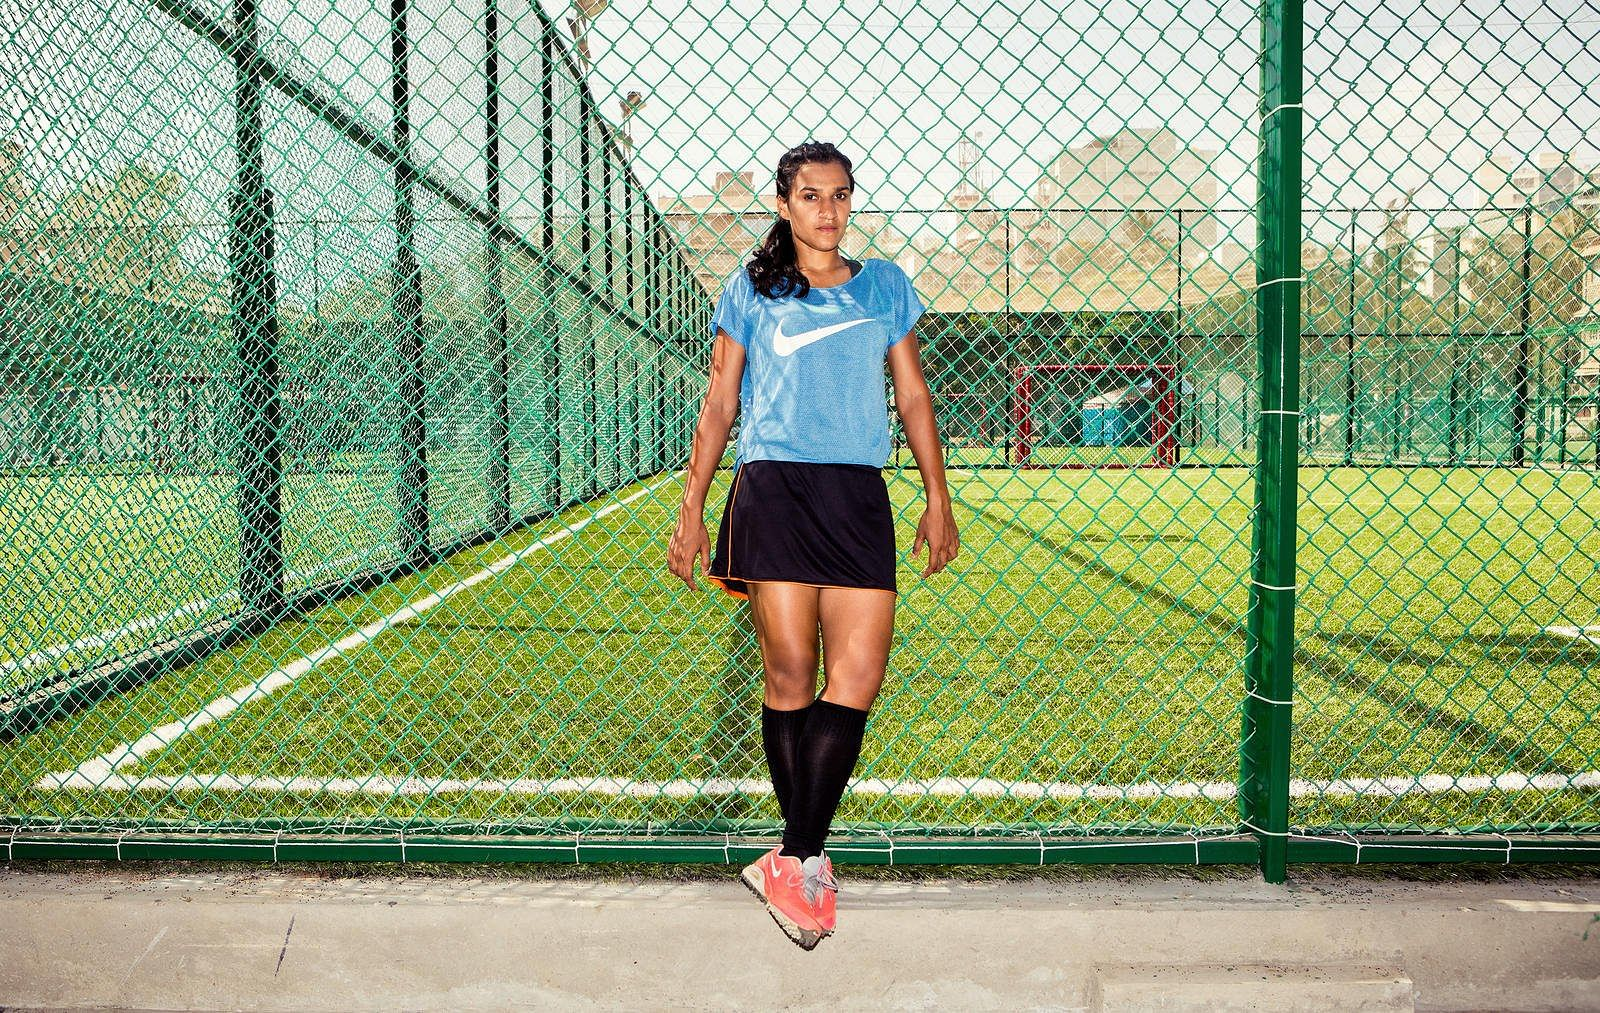 india-female-athletes-nike-video-body-rani_rampal.jpg__1600x1013_q85_crop_subsampling-2_upscale